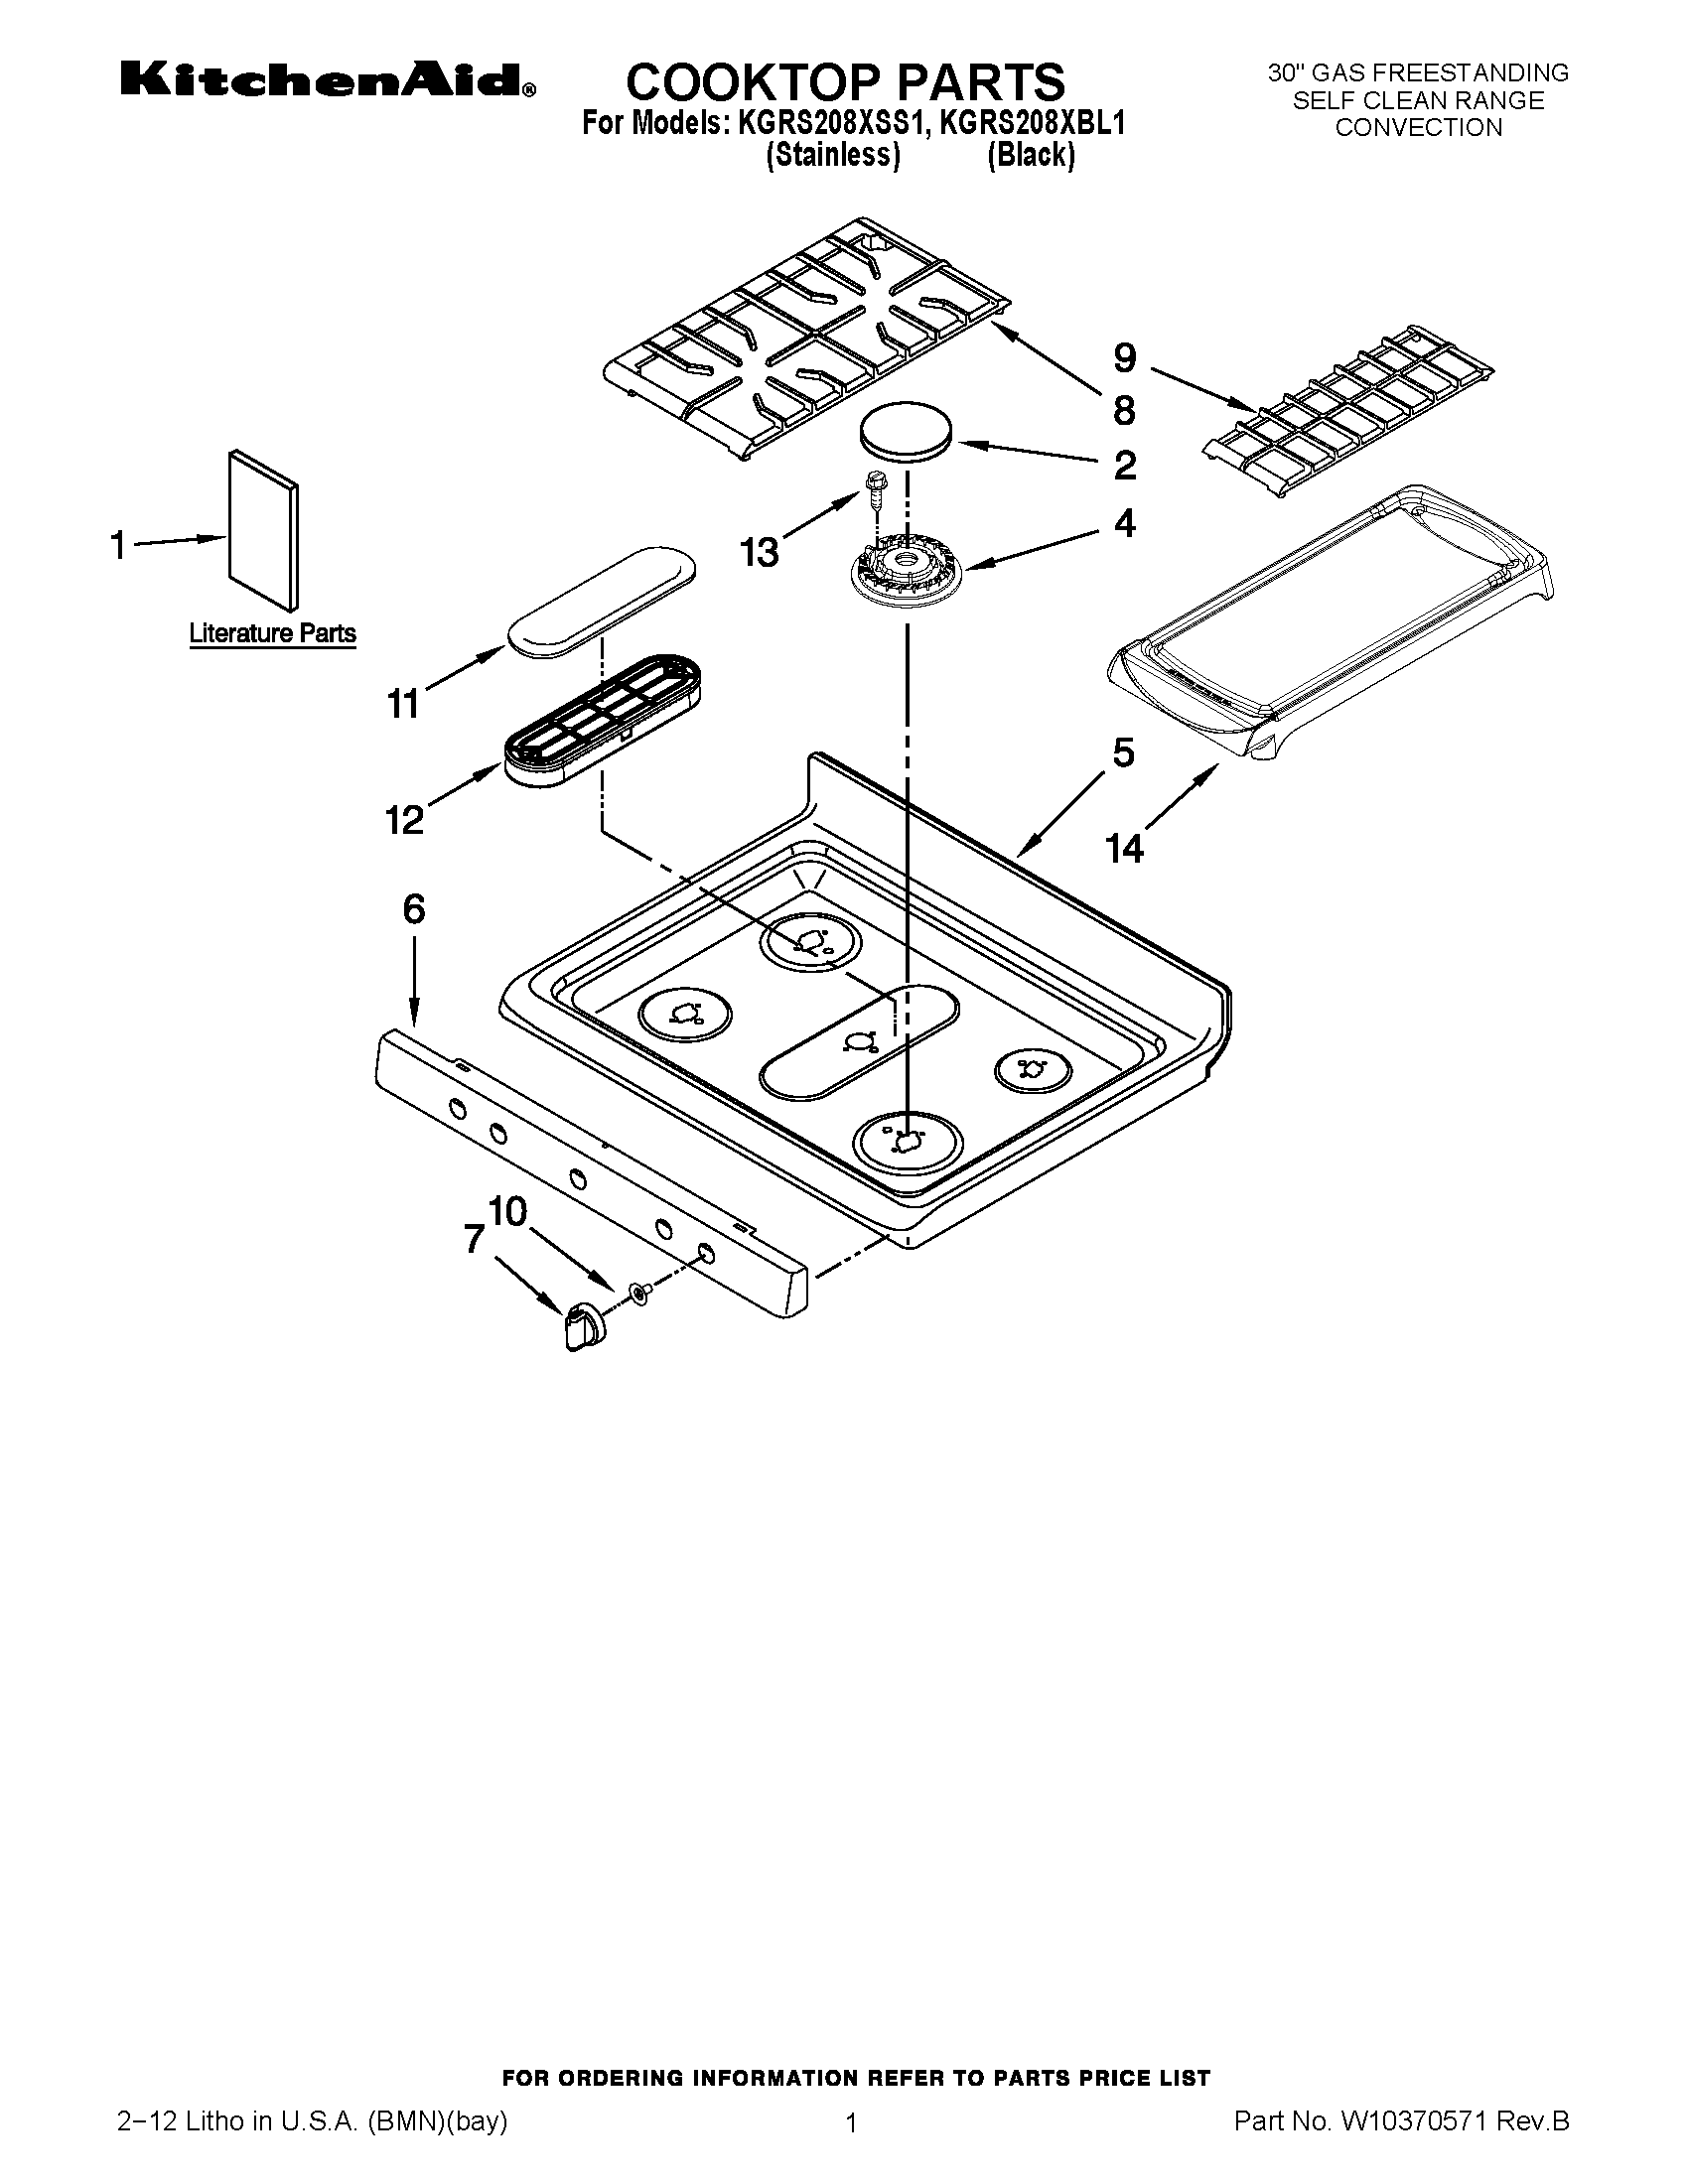 Parts and plans for Whirlpool 30